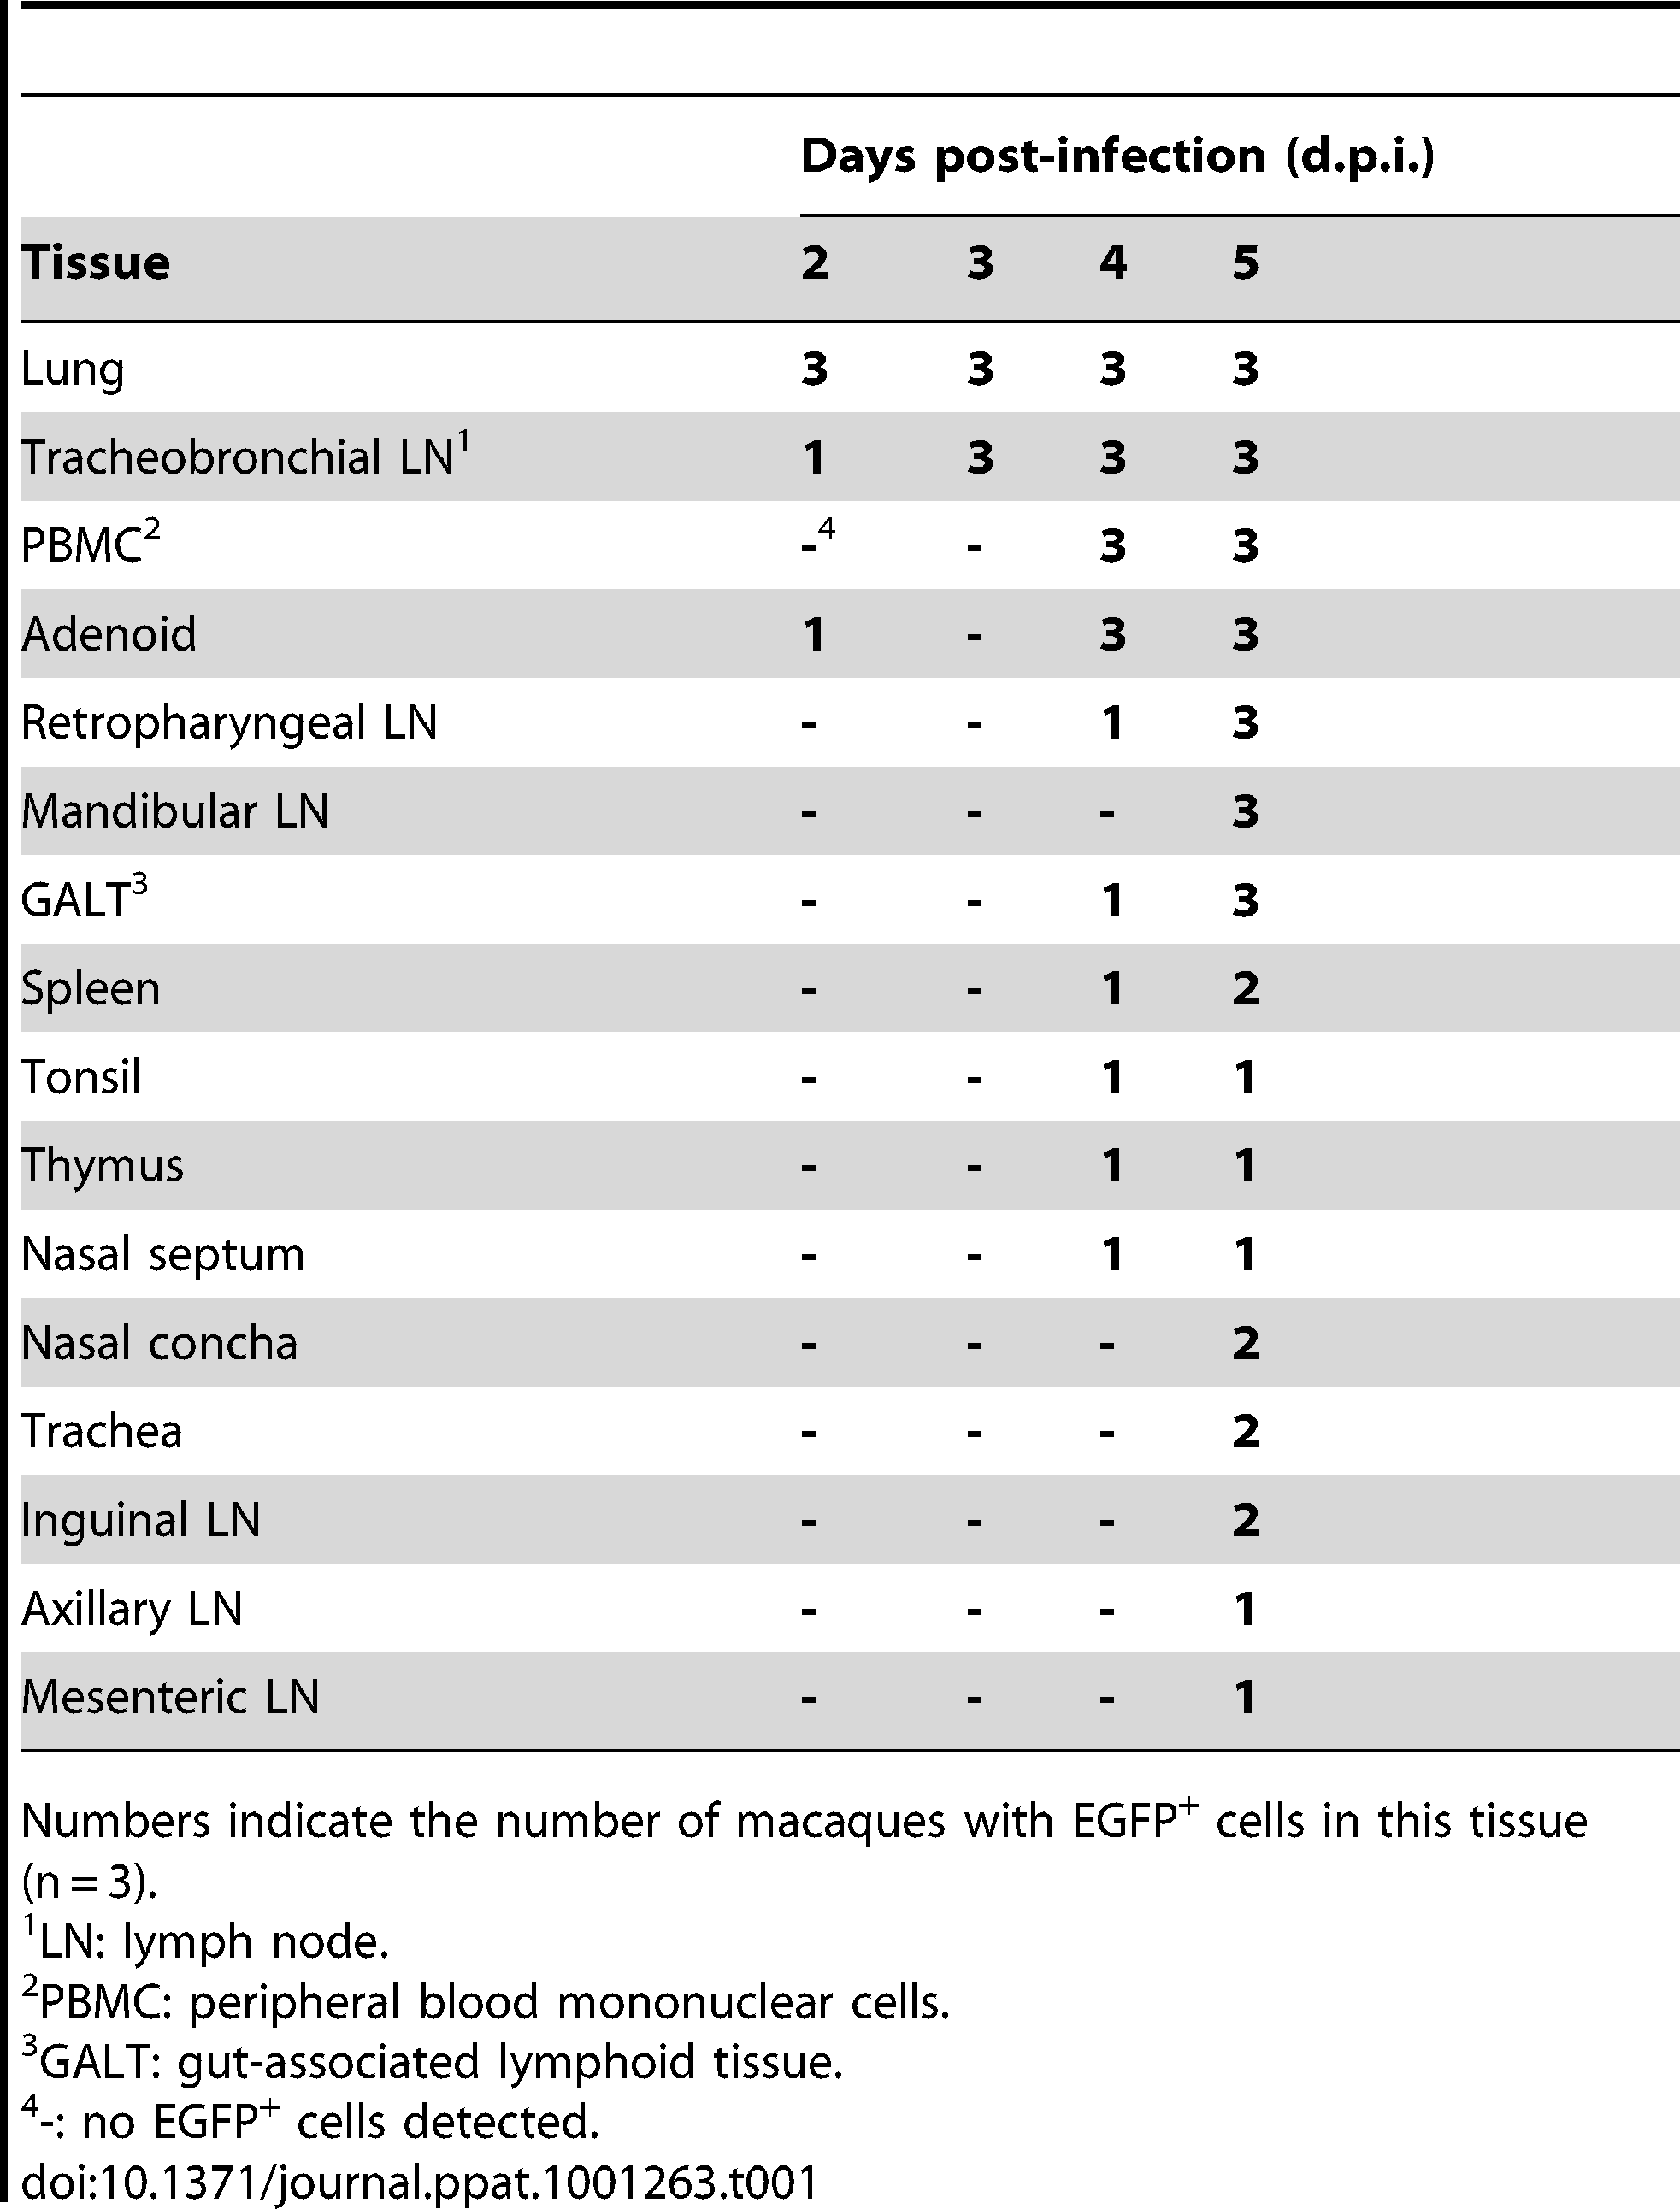 Dissemination of MV in tissues during early stage of infection.